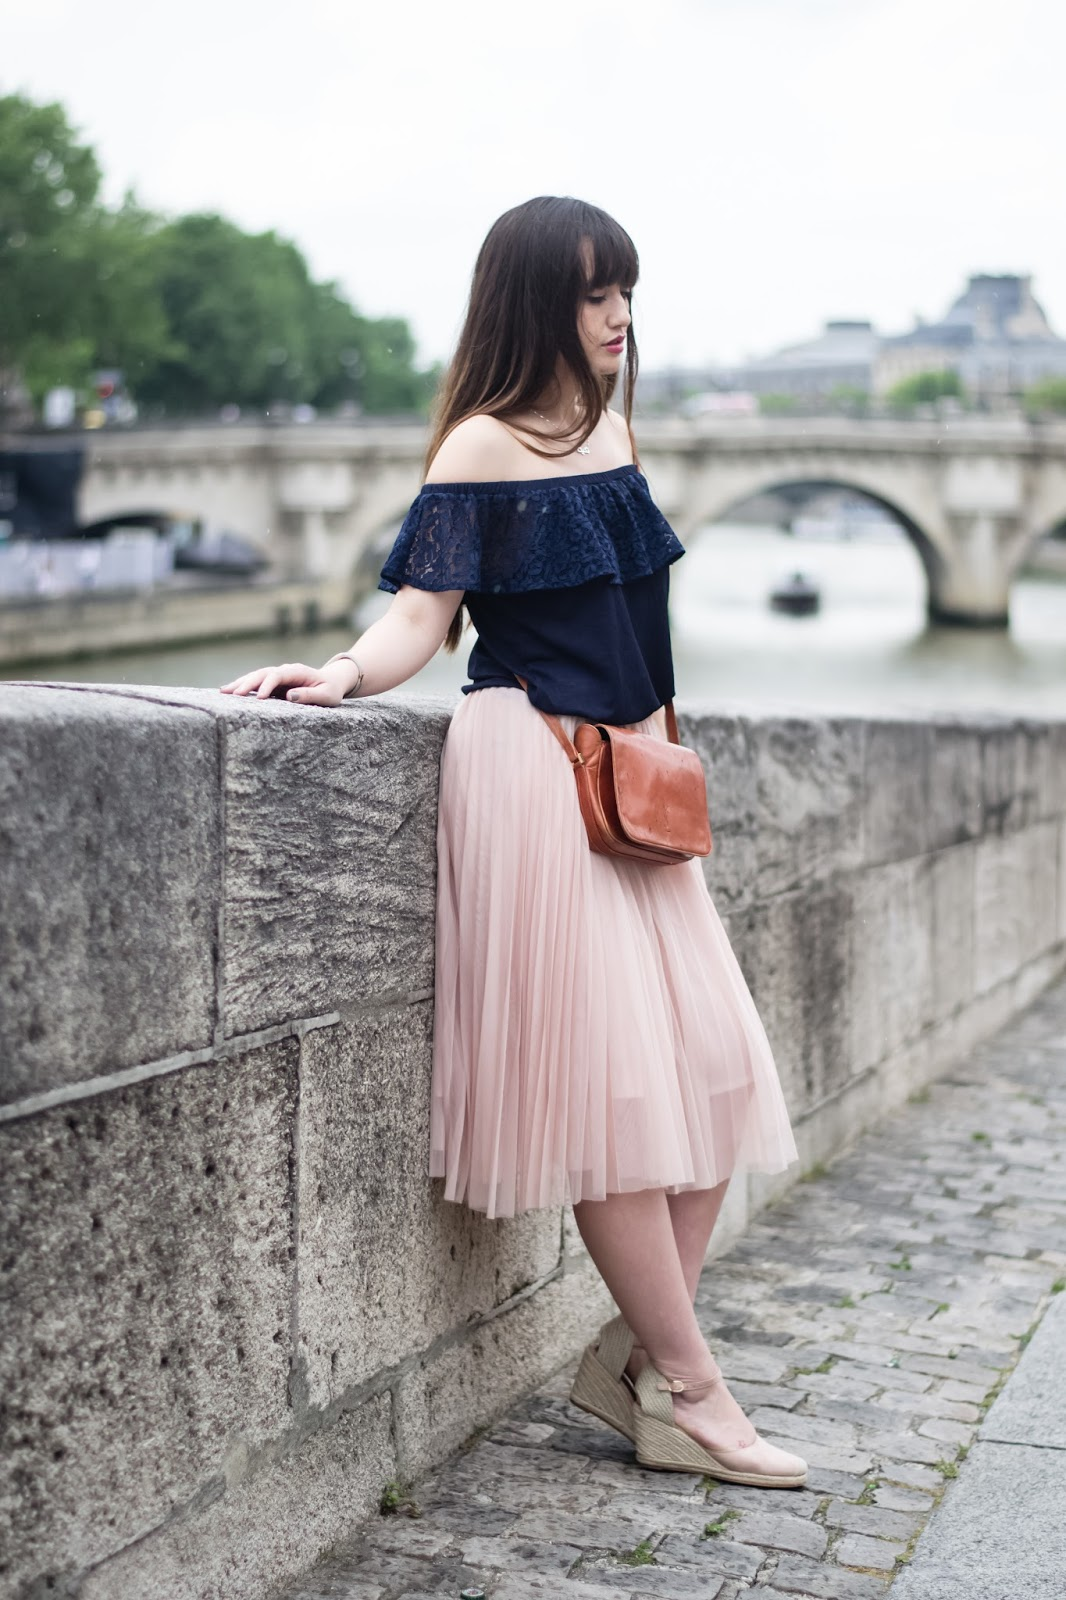 meetmeinparee, paris blogger, fashion, look, style, chic parisian style, spring look, pink tutu skirt